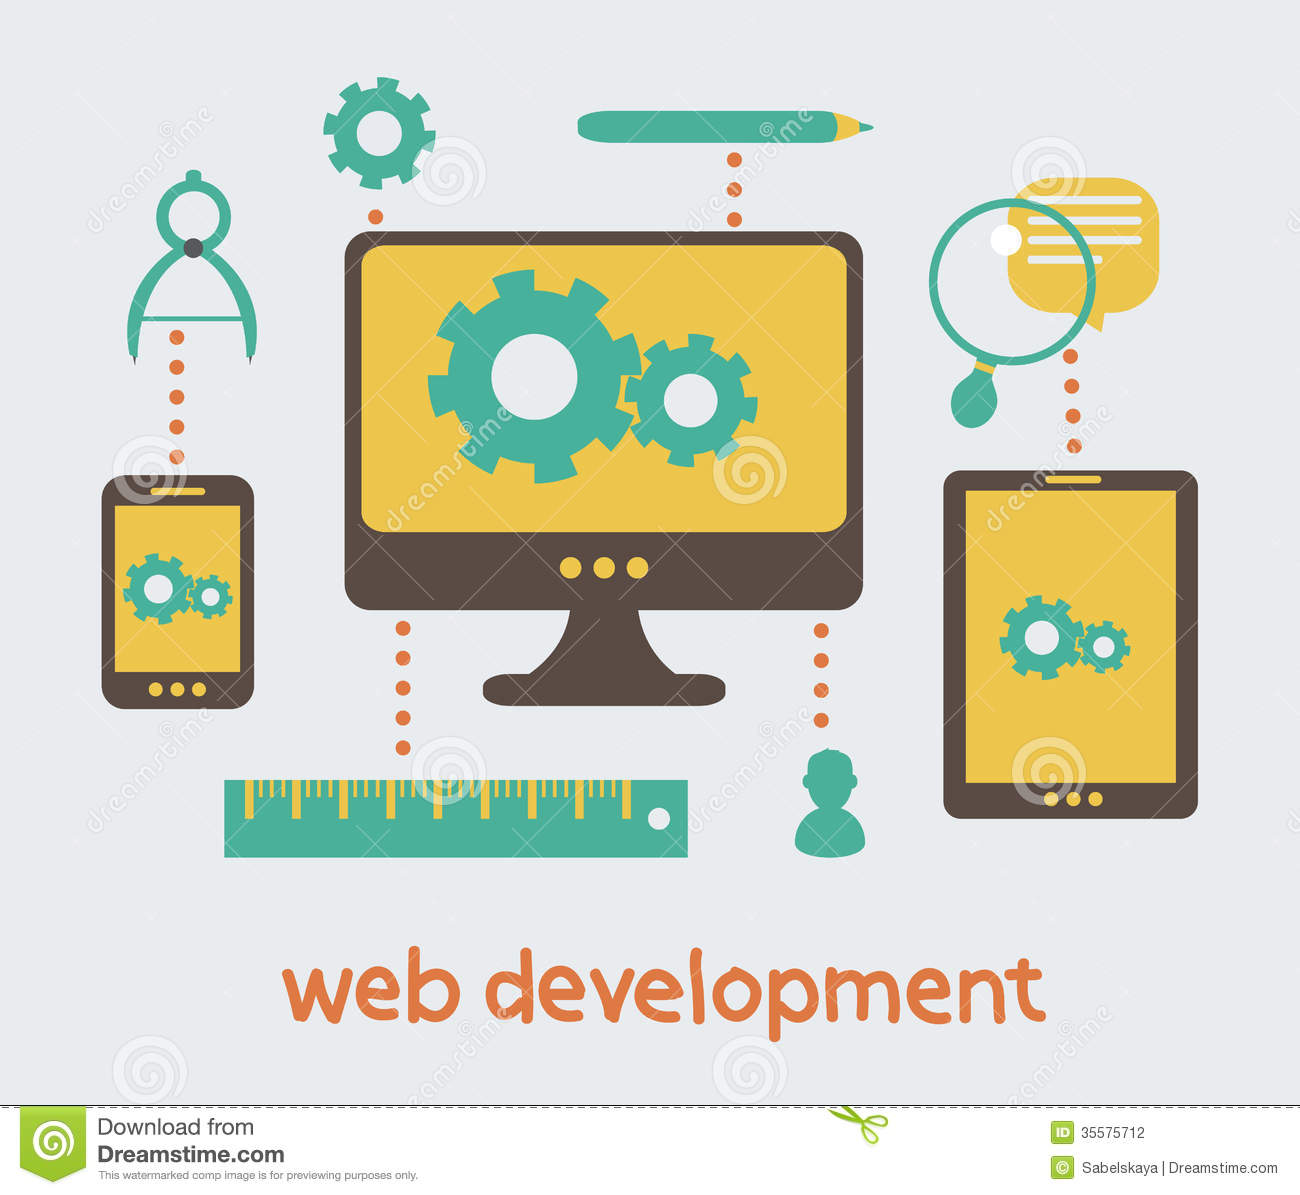 web-development-flat-modern-illustration-design-vector-eps-35575712.jpg